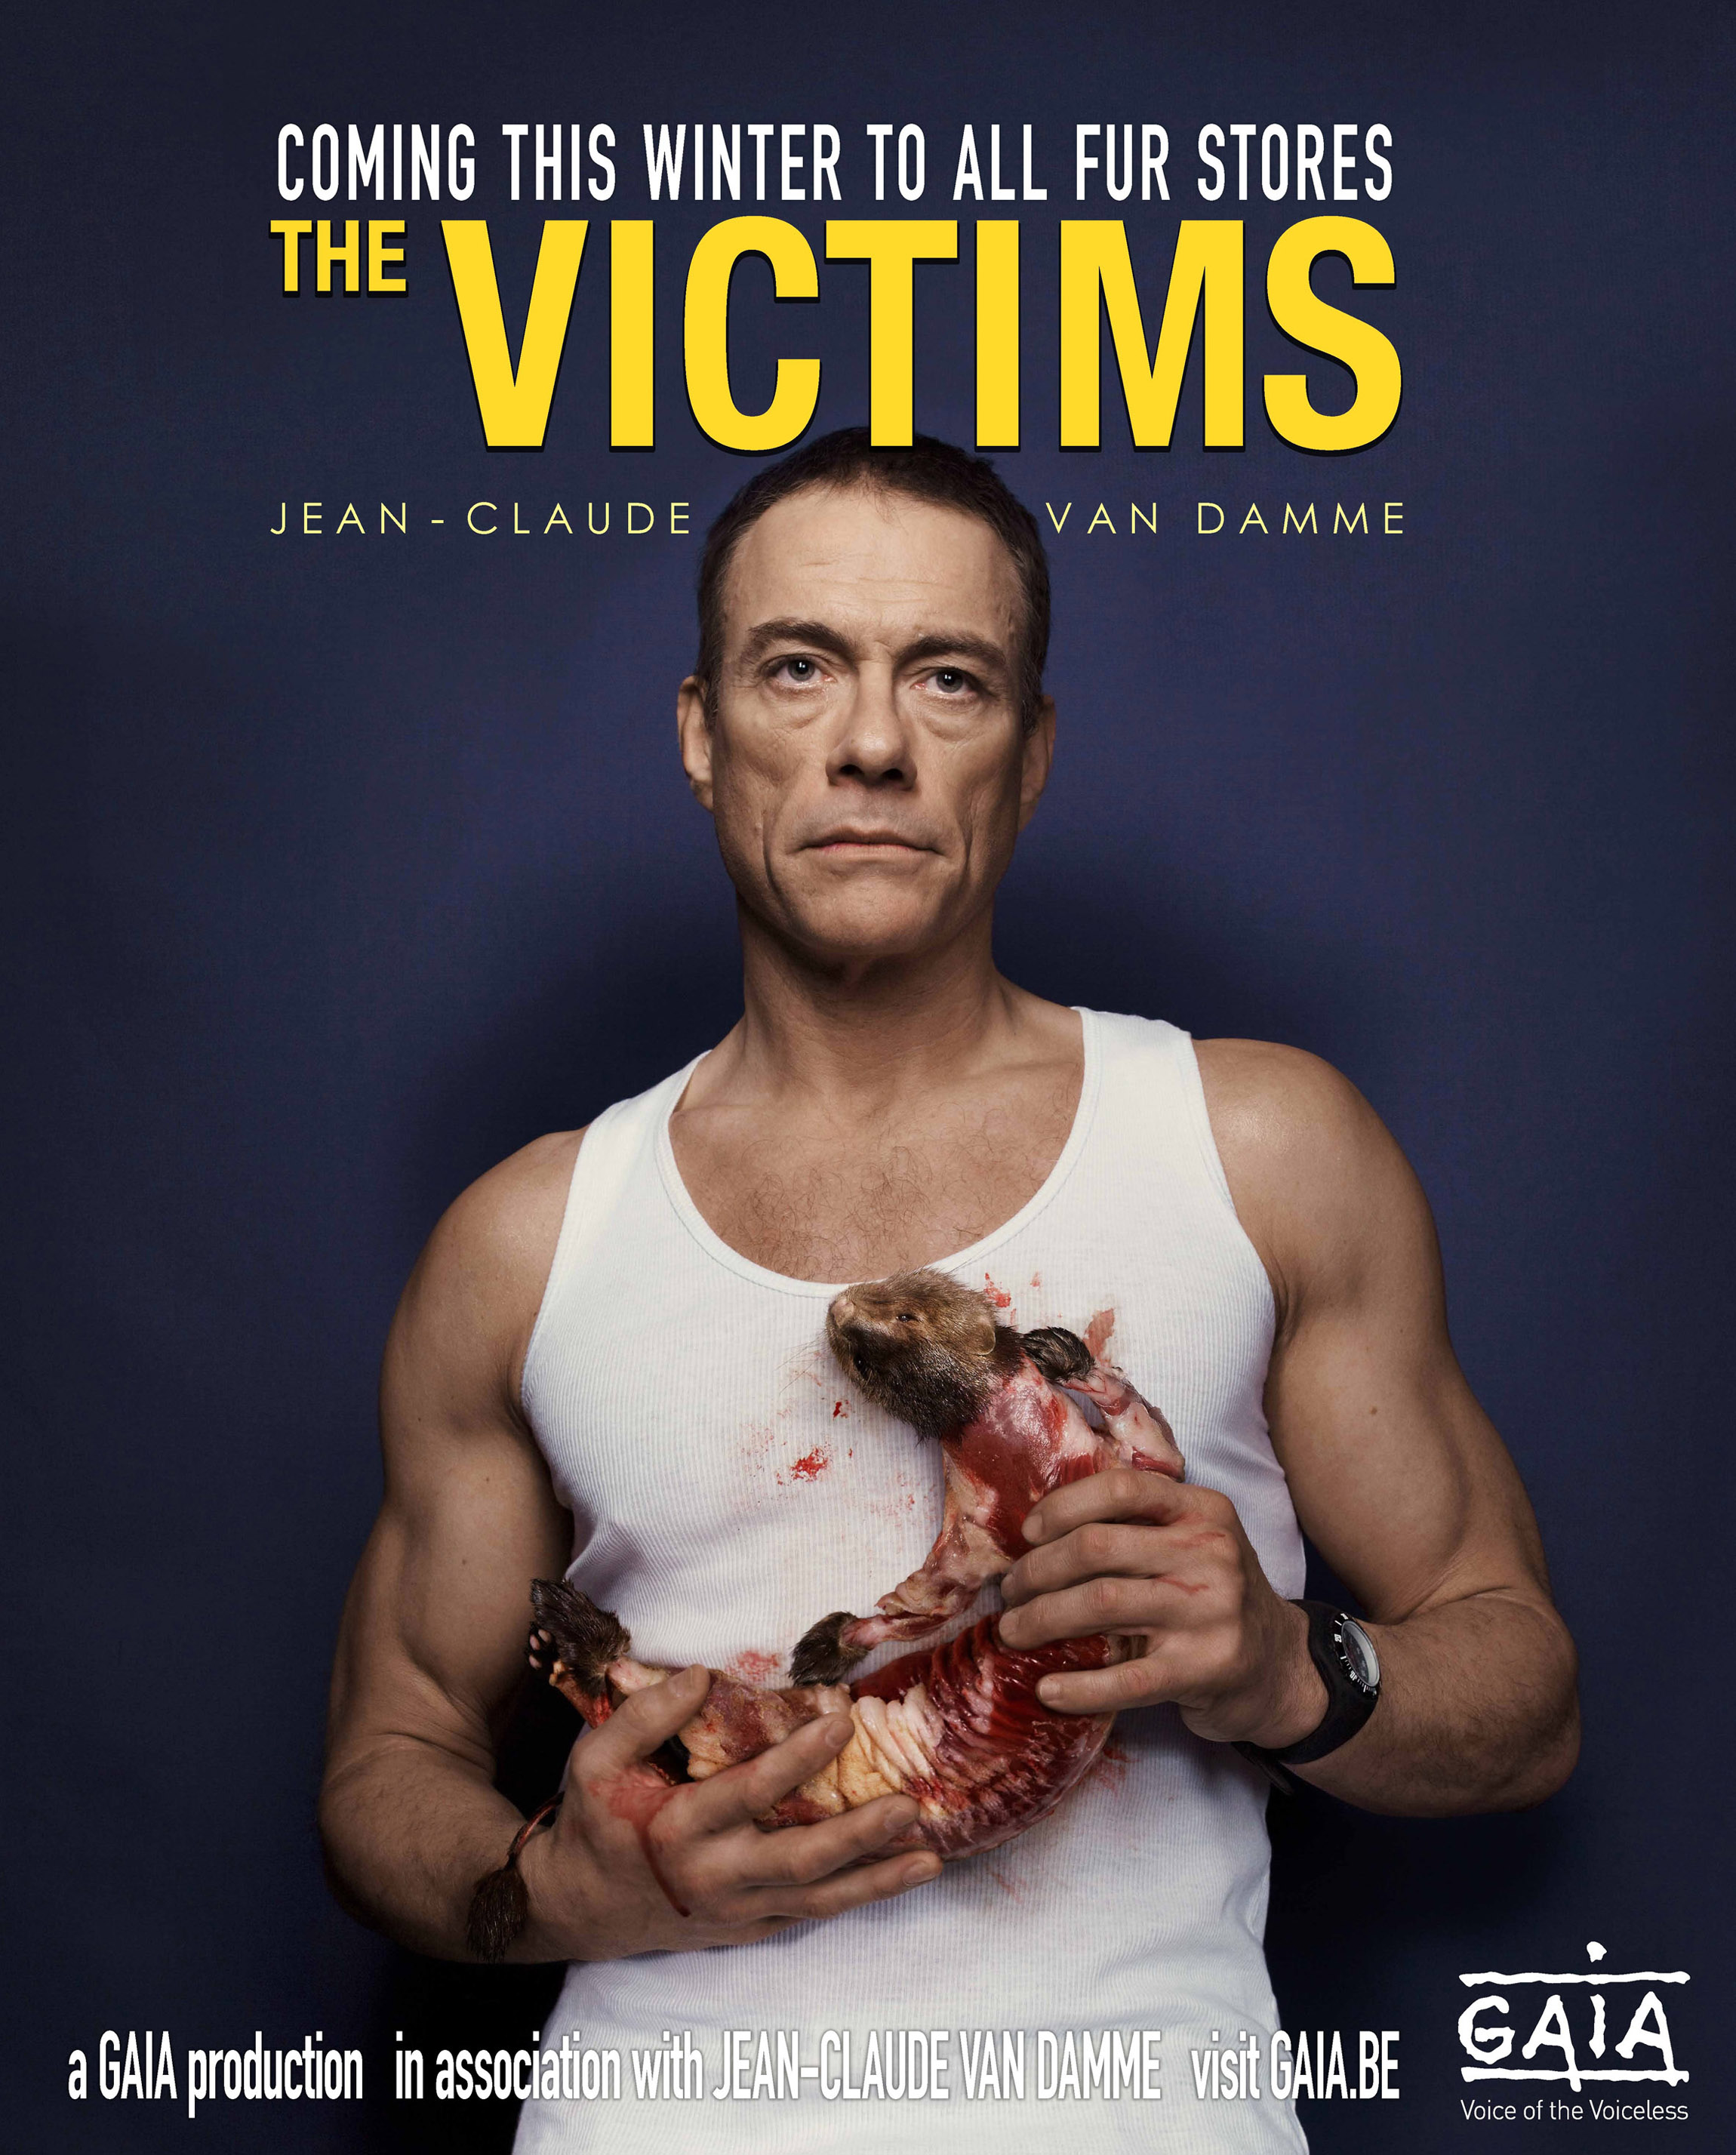 jean claude van damme speaks out against fur with massive